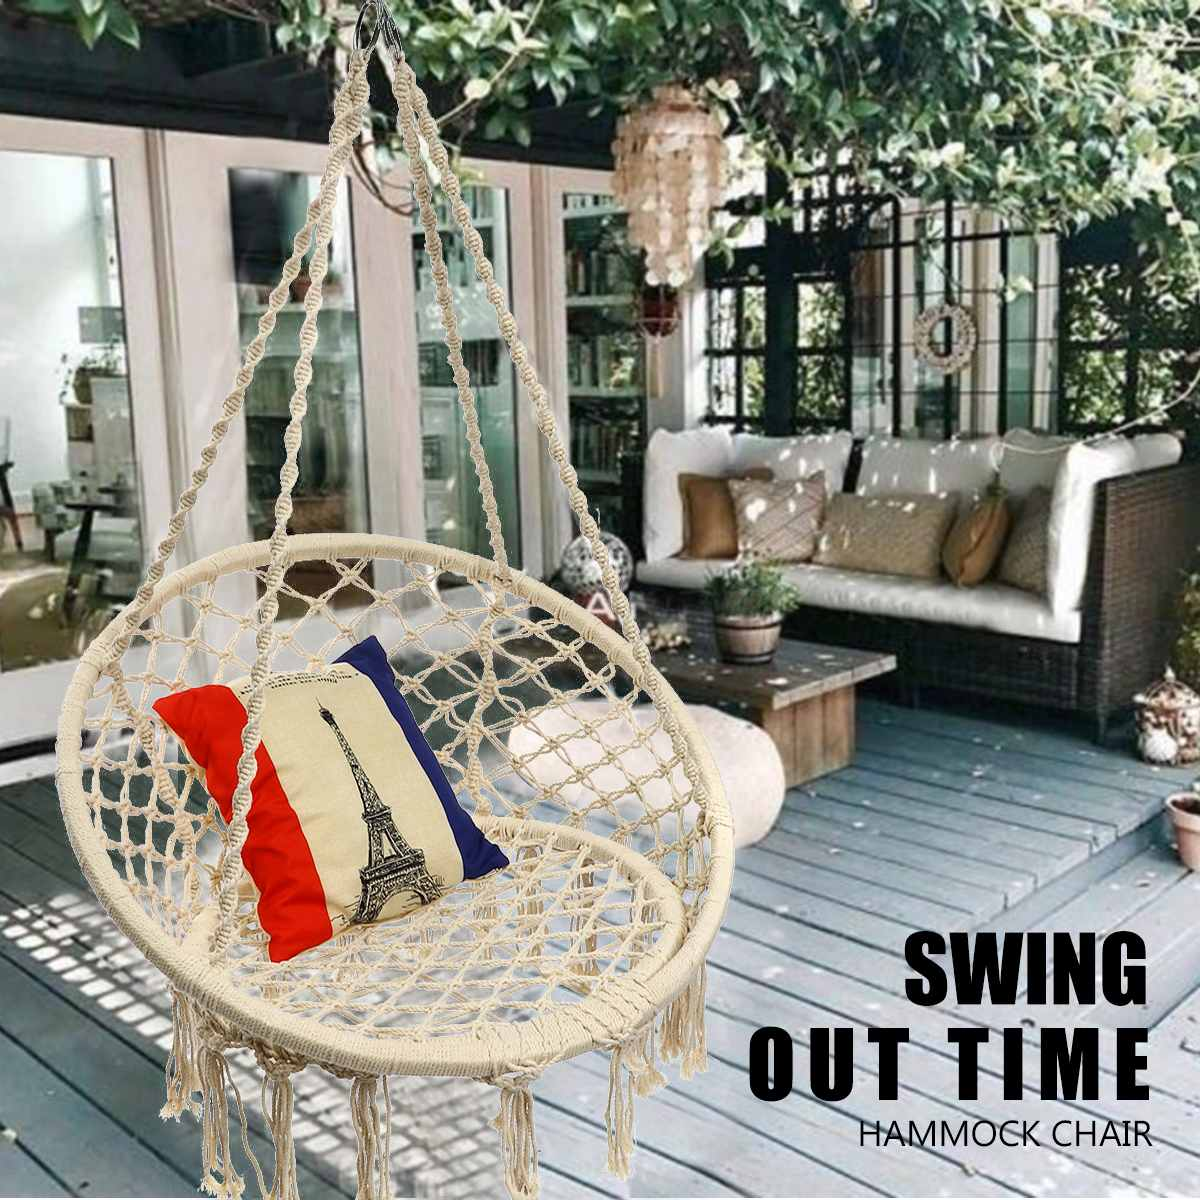 Nordic Round Hanging Hammock Chair Outdoor Garden Yard Indoor Bedroom Furniture Safety Swinging Chair For Child Adult